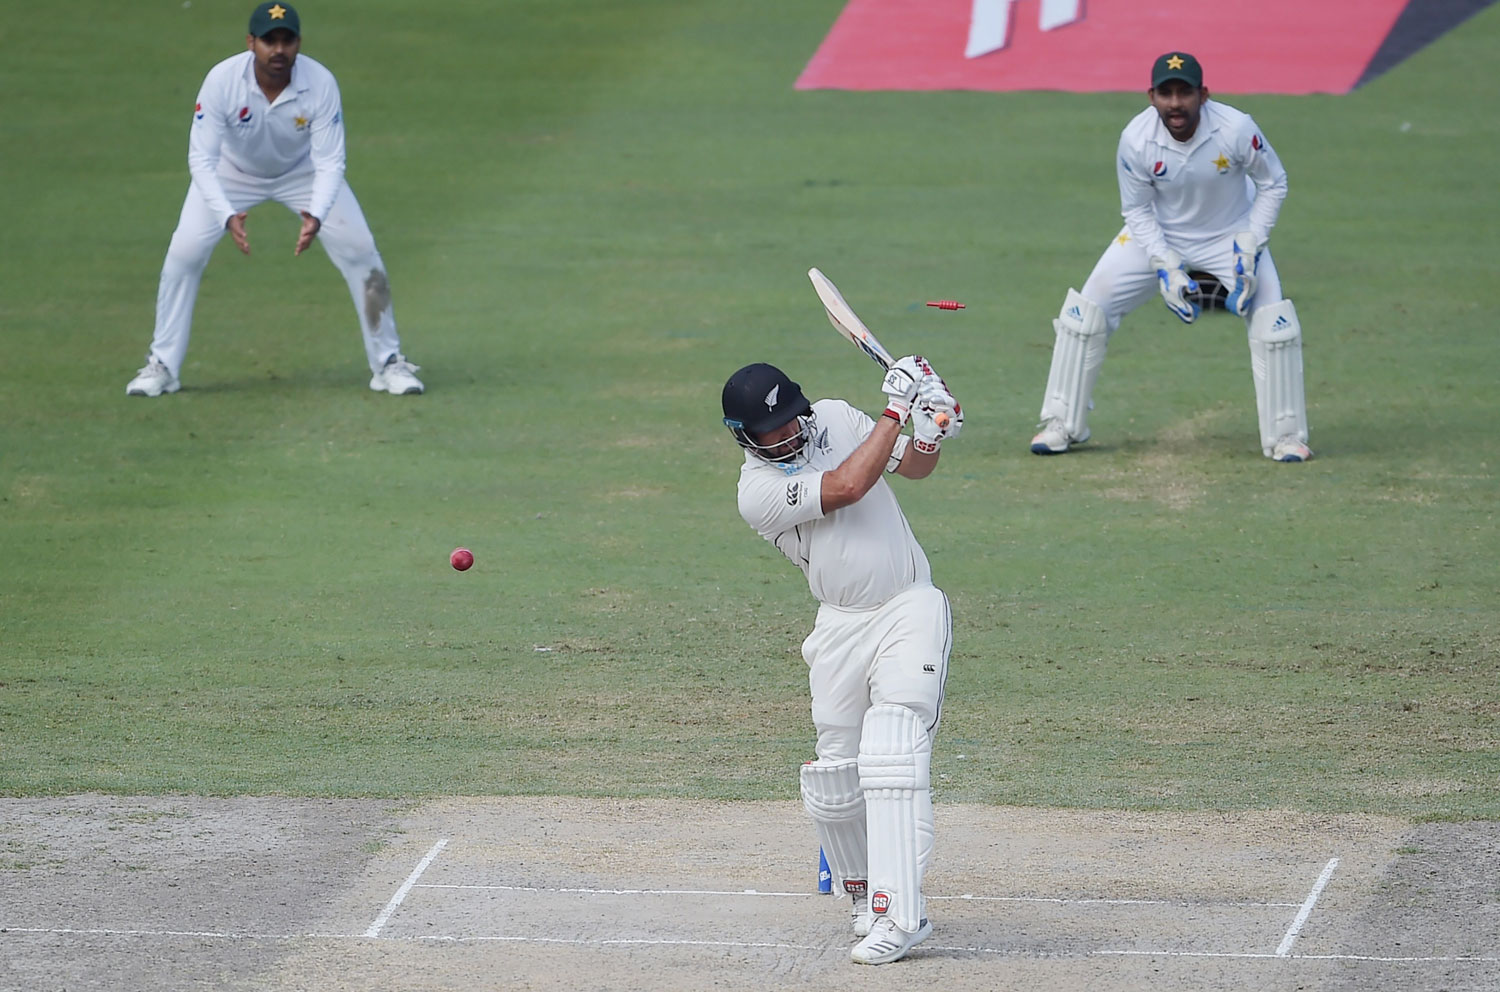 Pakistan vs New Zealand - Second Test